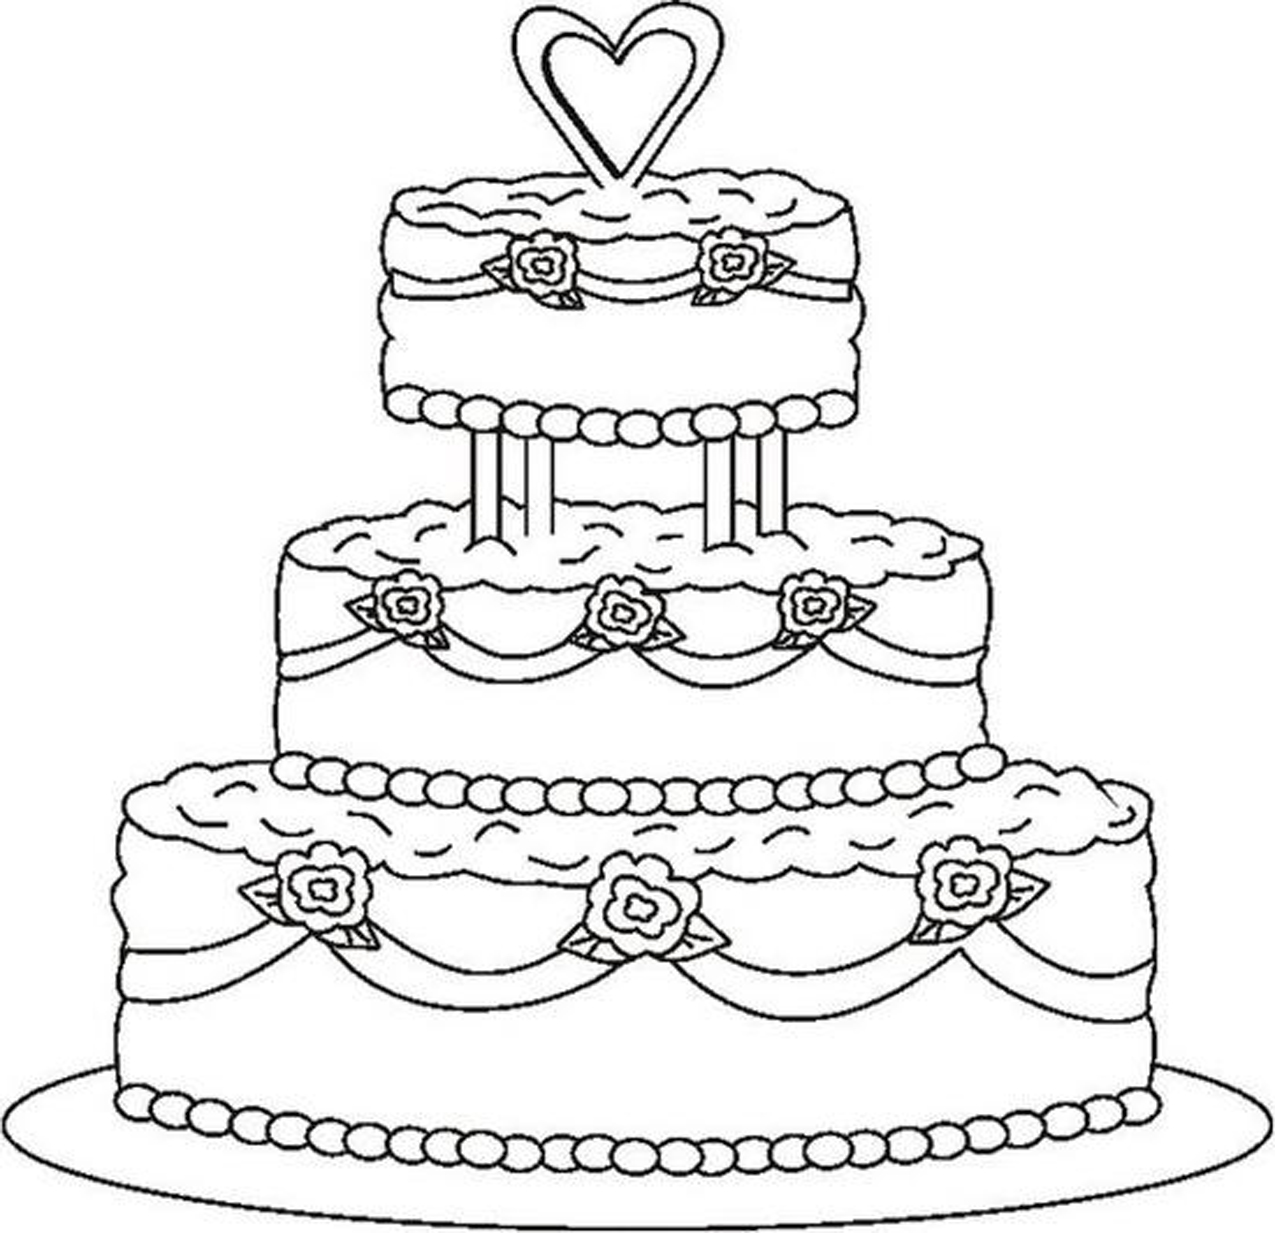 1275x1233 Cake Coloring Pages